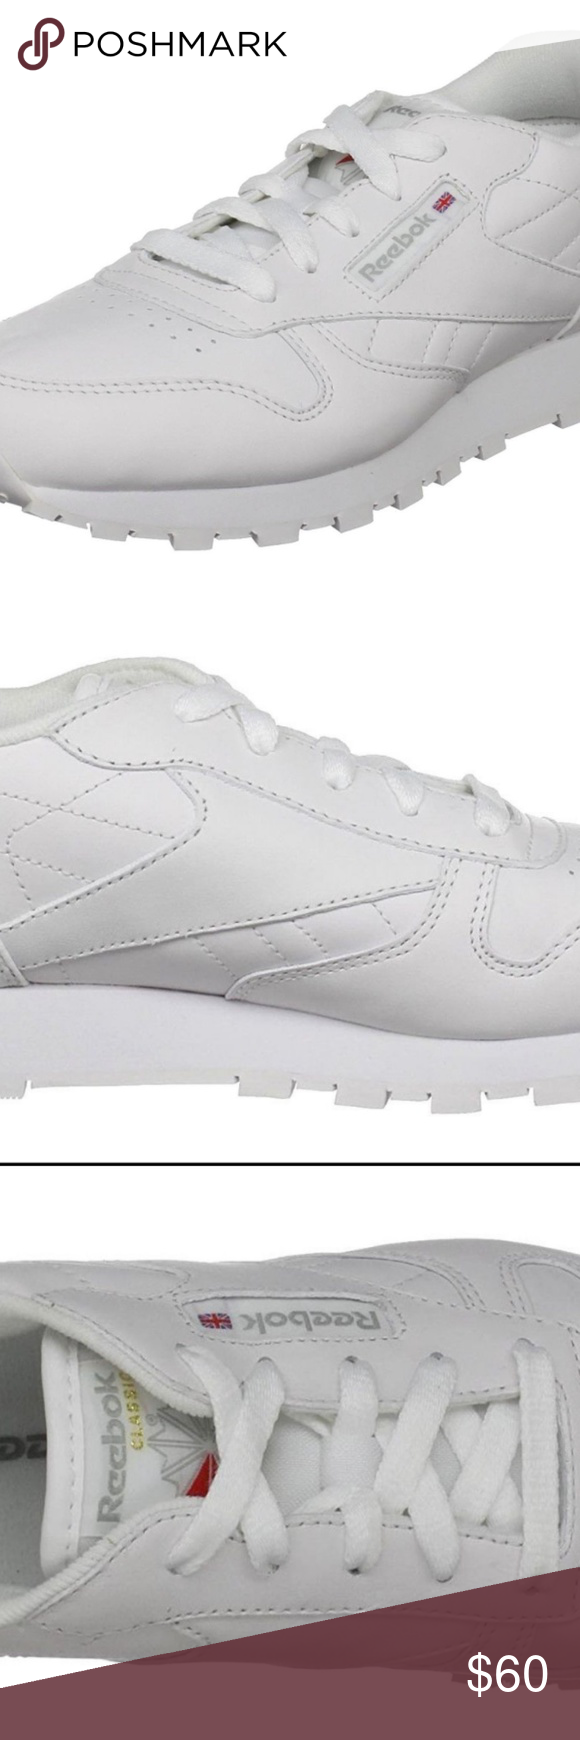 b069152fbff Reebok Classic Leather White Junior Kids Running T Condition  New without  box  A brand-new